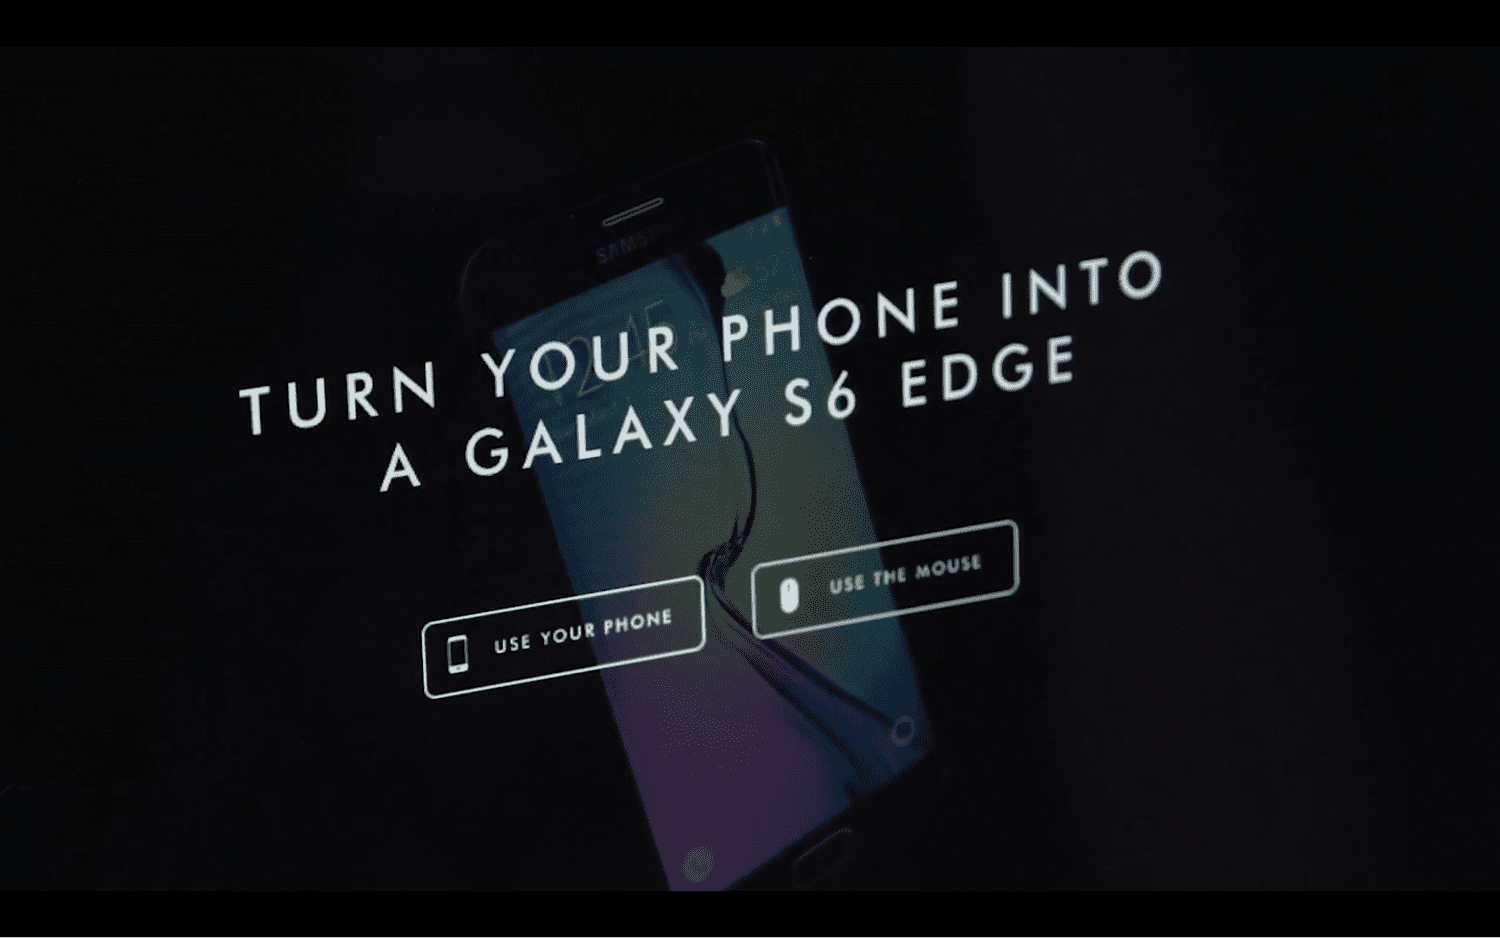 Samsung: Try on a Six